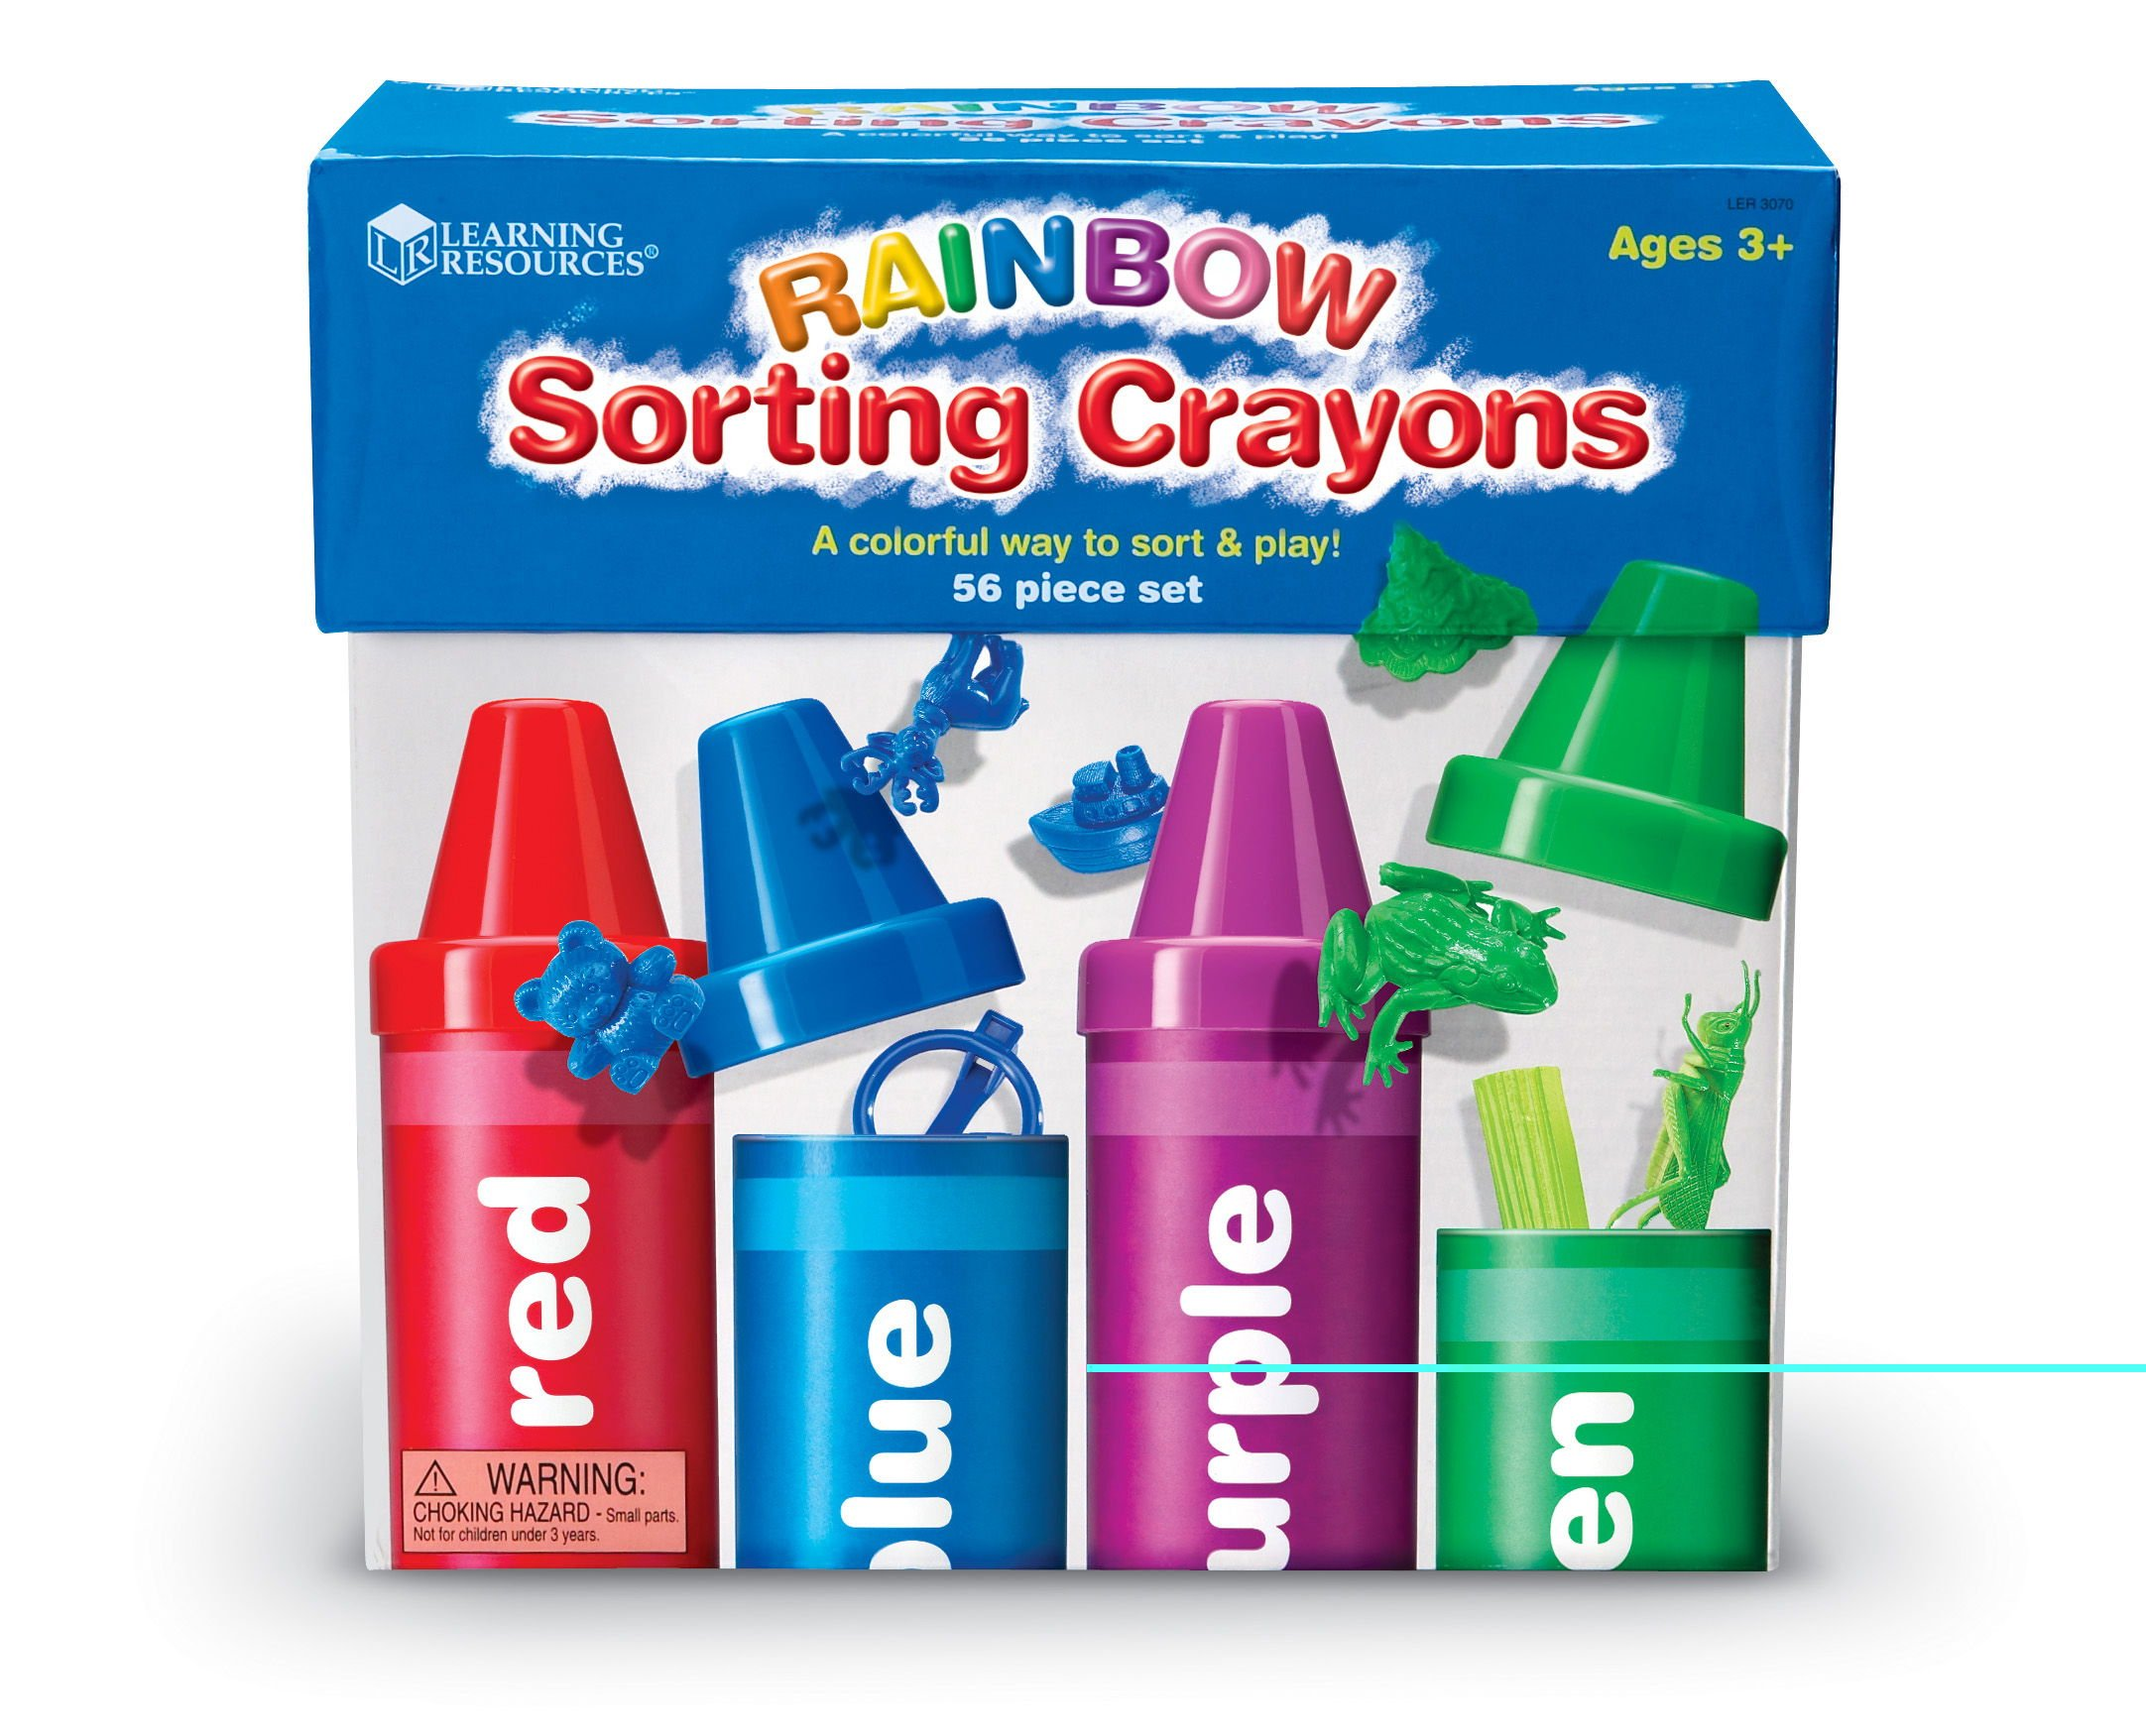 Learning Resources Rainbow Sorting Crayons, Various Colors, 56 Pieces by Learning Resources (Image #5)